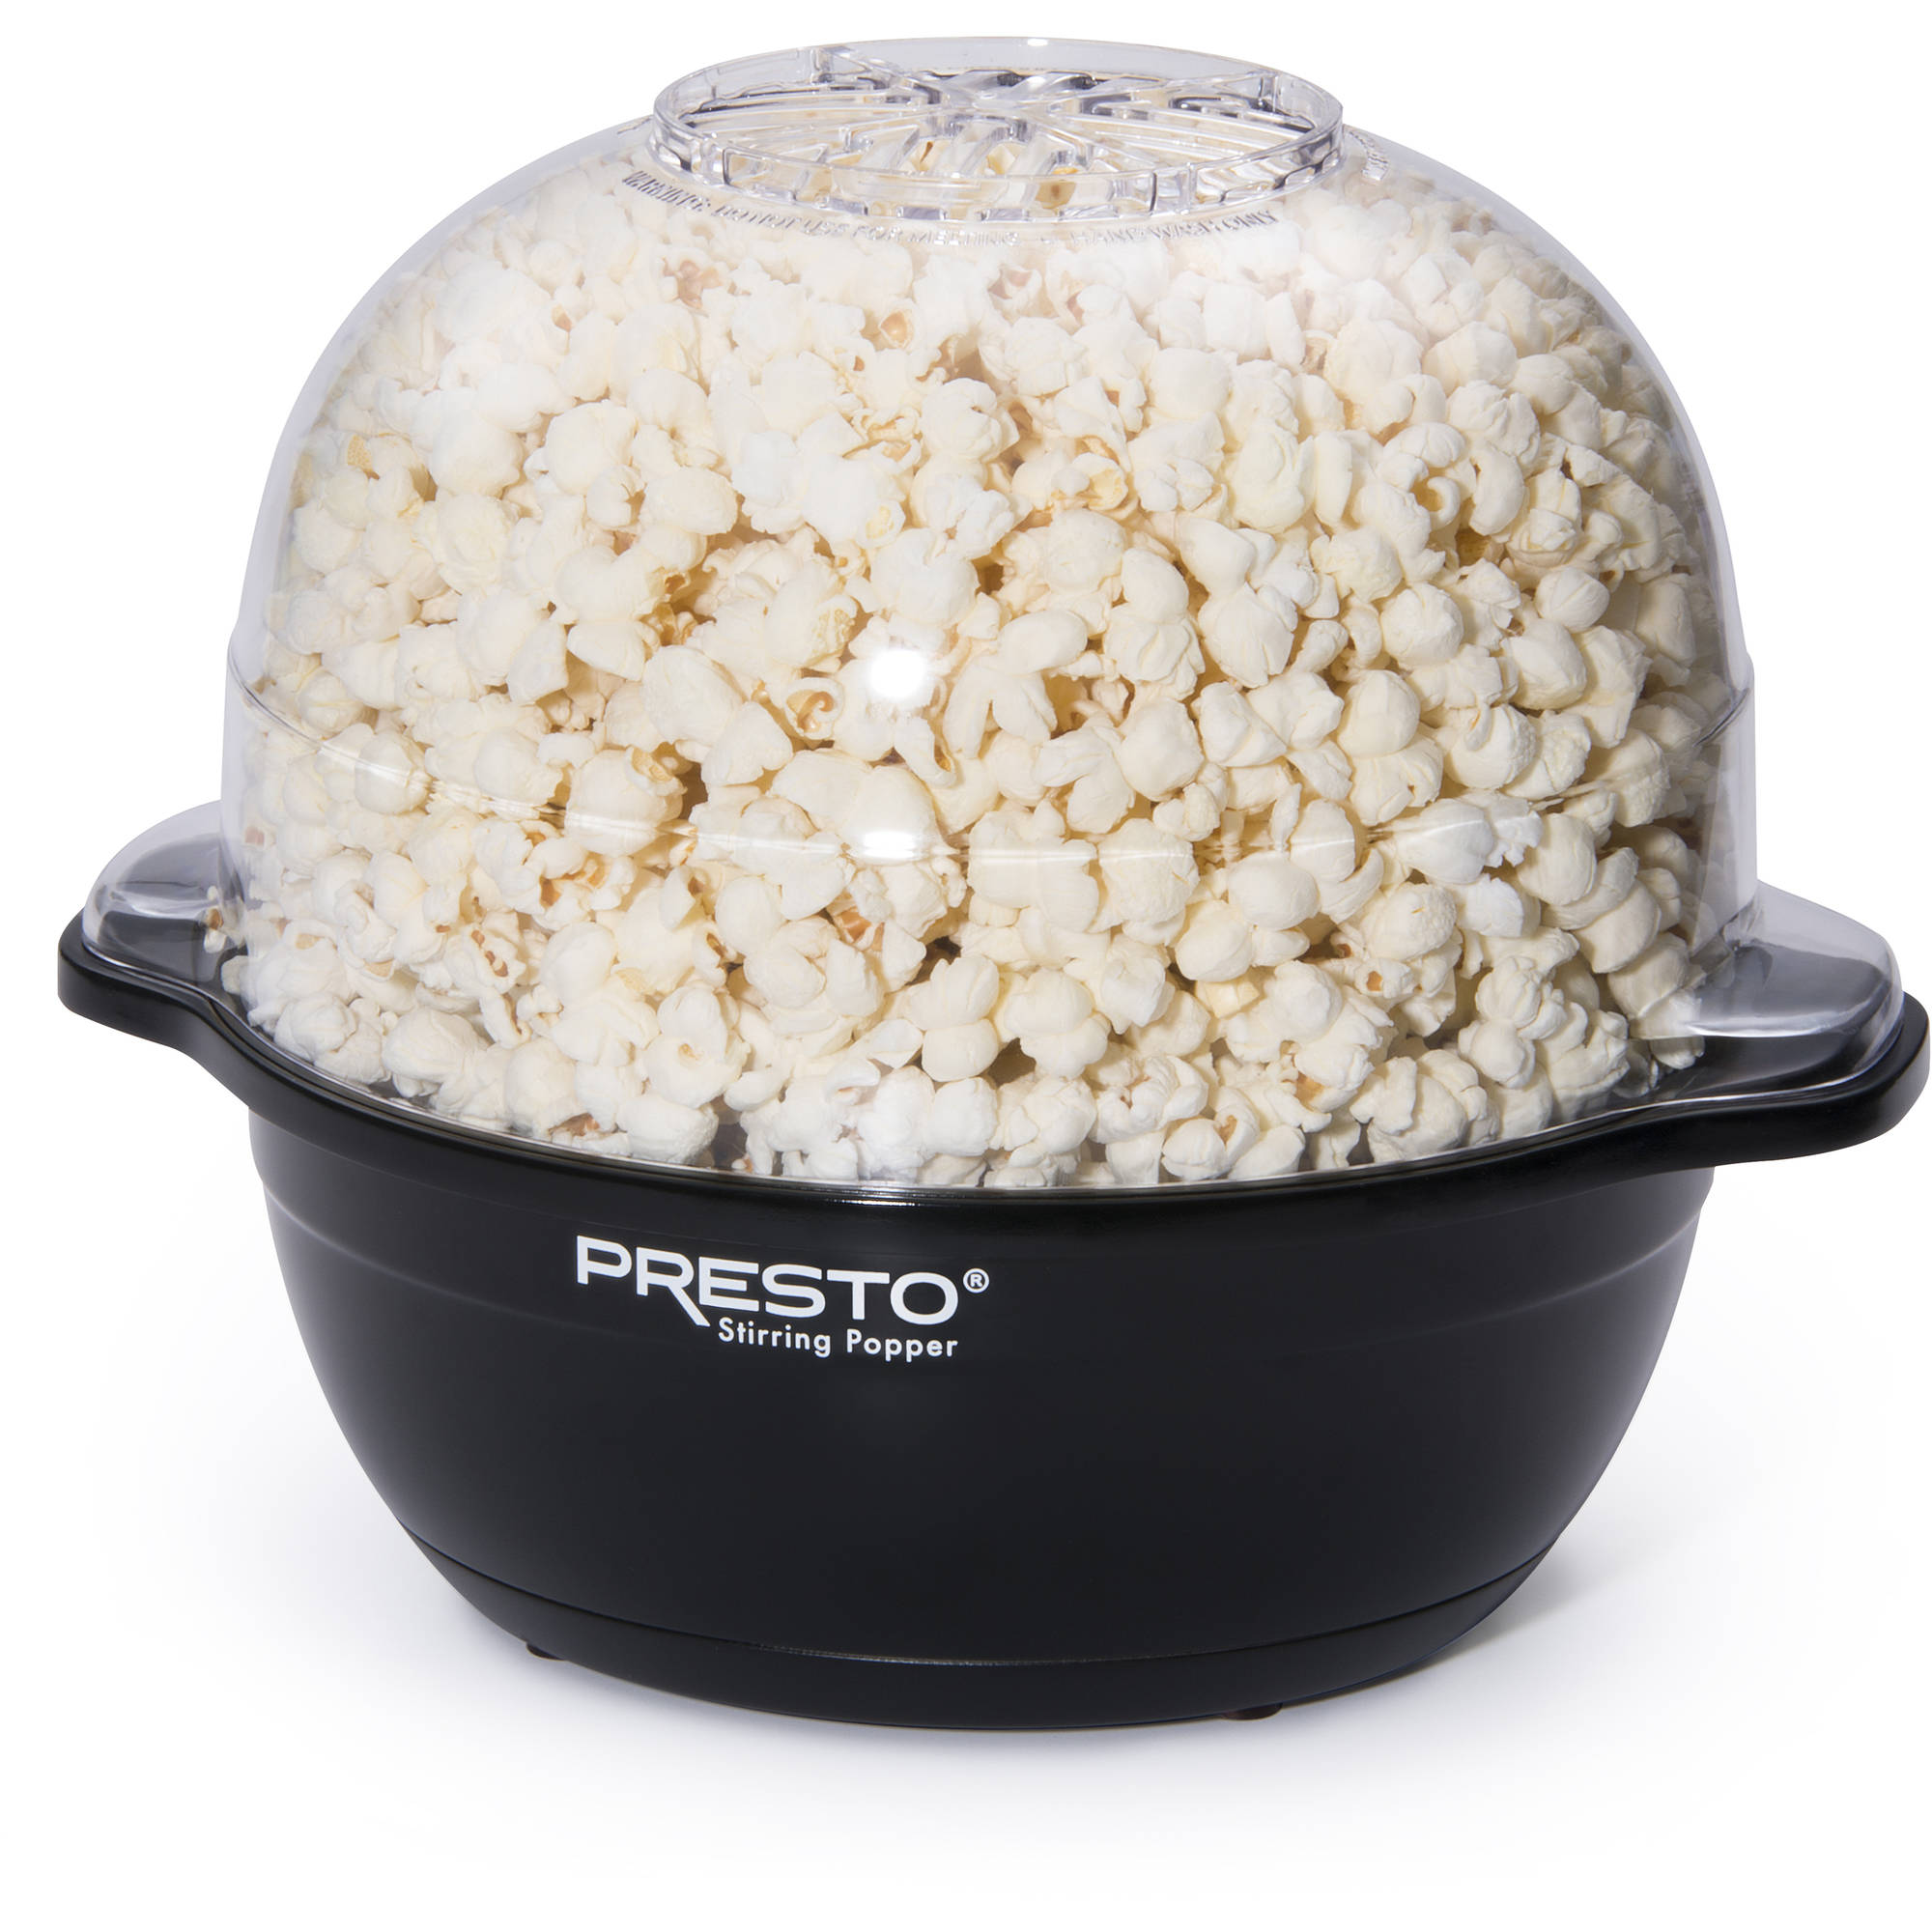 how to serve premade popcorn hhot